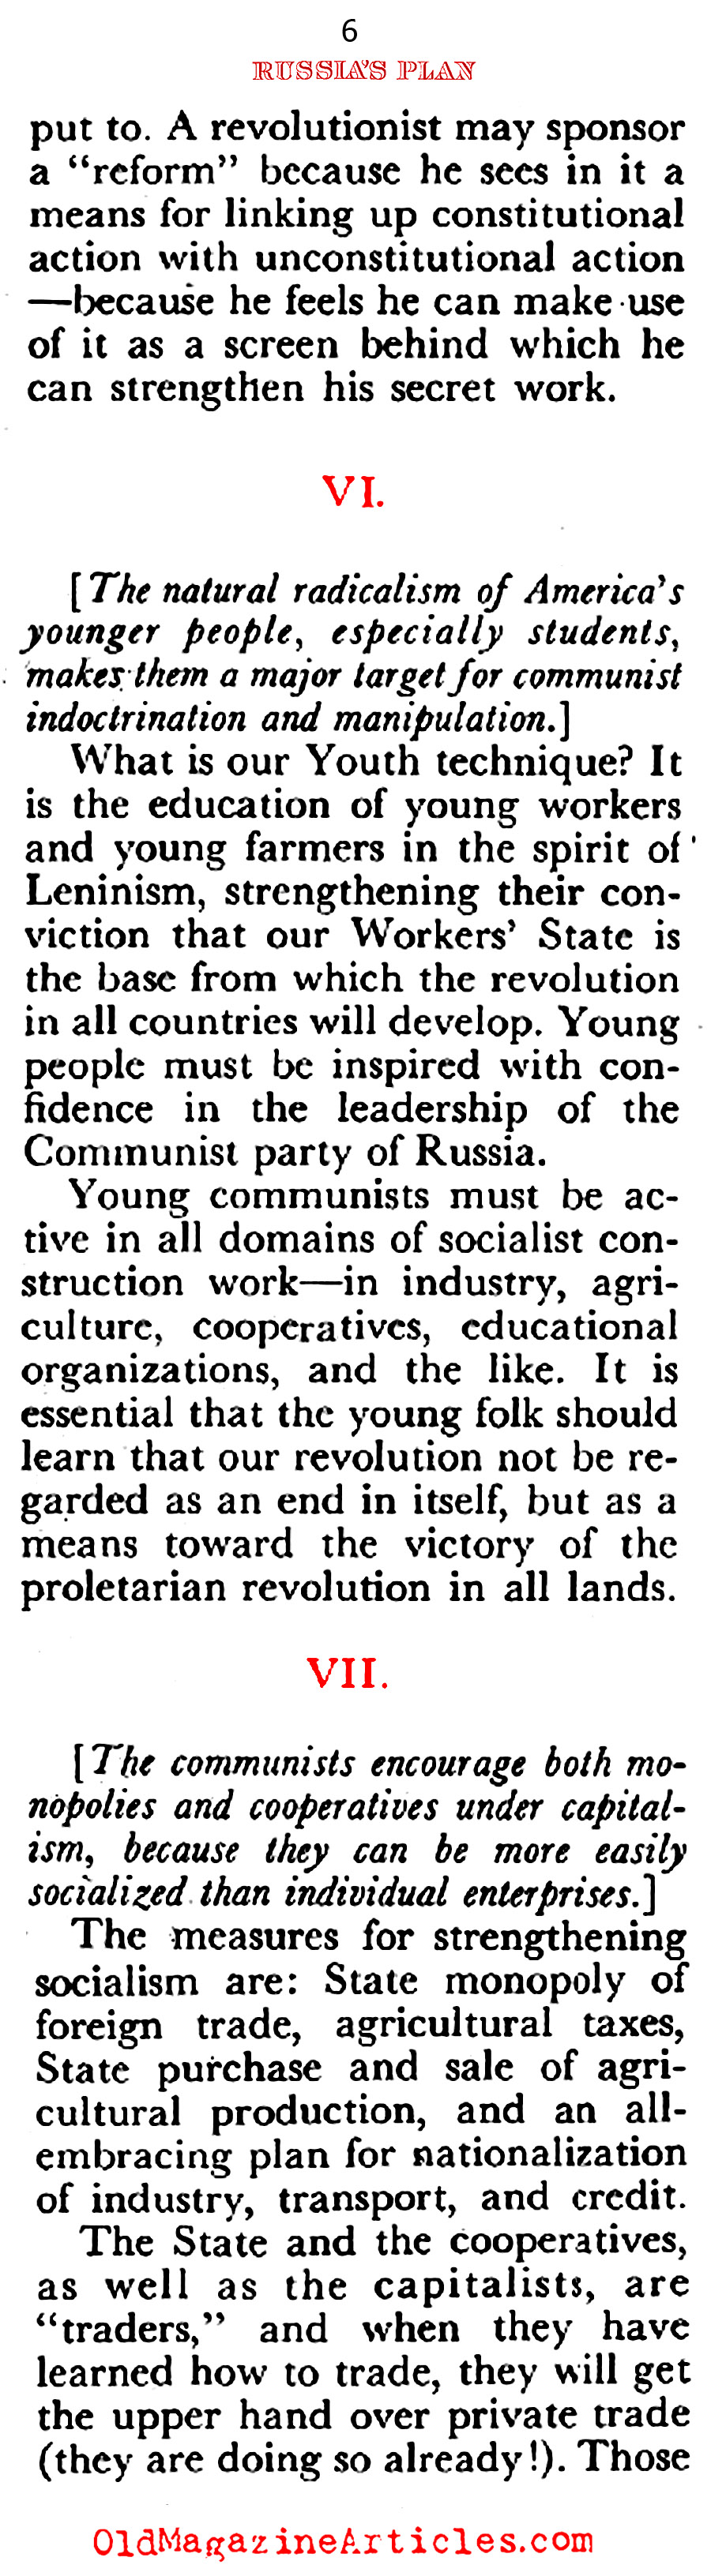 Stalin's Nine Point Plan (Coronet Magazine, 1951)